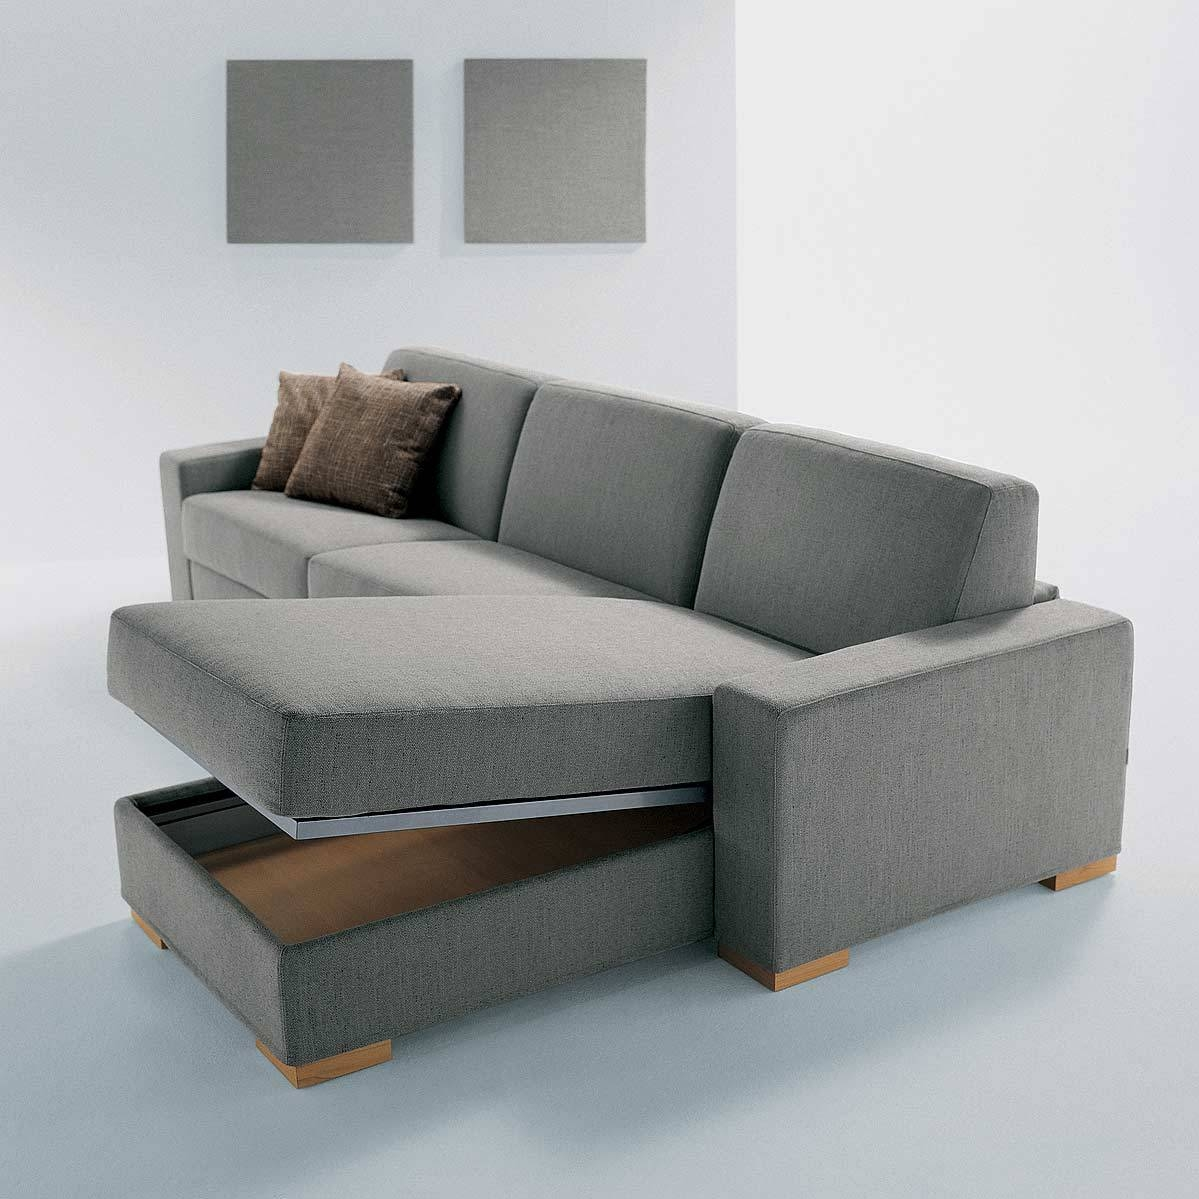 Manstad Sectional Sofa Bed & Storage From Ikea - Cleanupflorida for Manstad Sofa Bed With Storage From Ikea (Image 11 of 25)